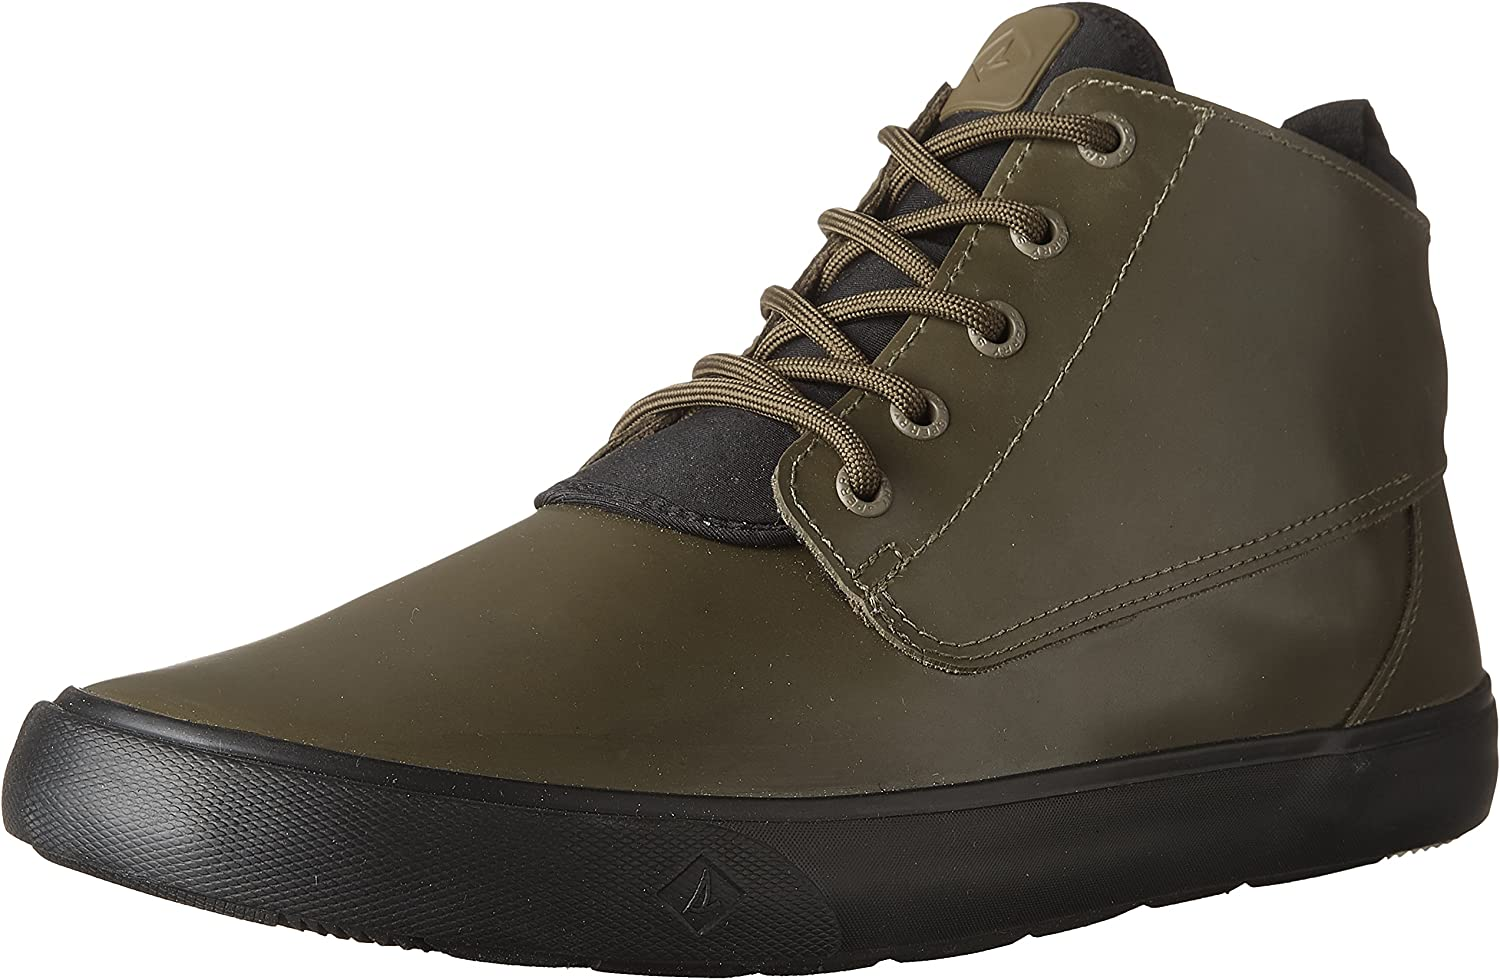 Sperry Mens Cutwater Chukka Rubber Ankle Boots